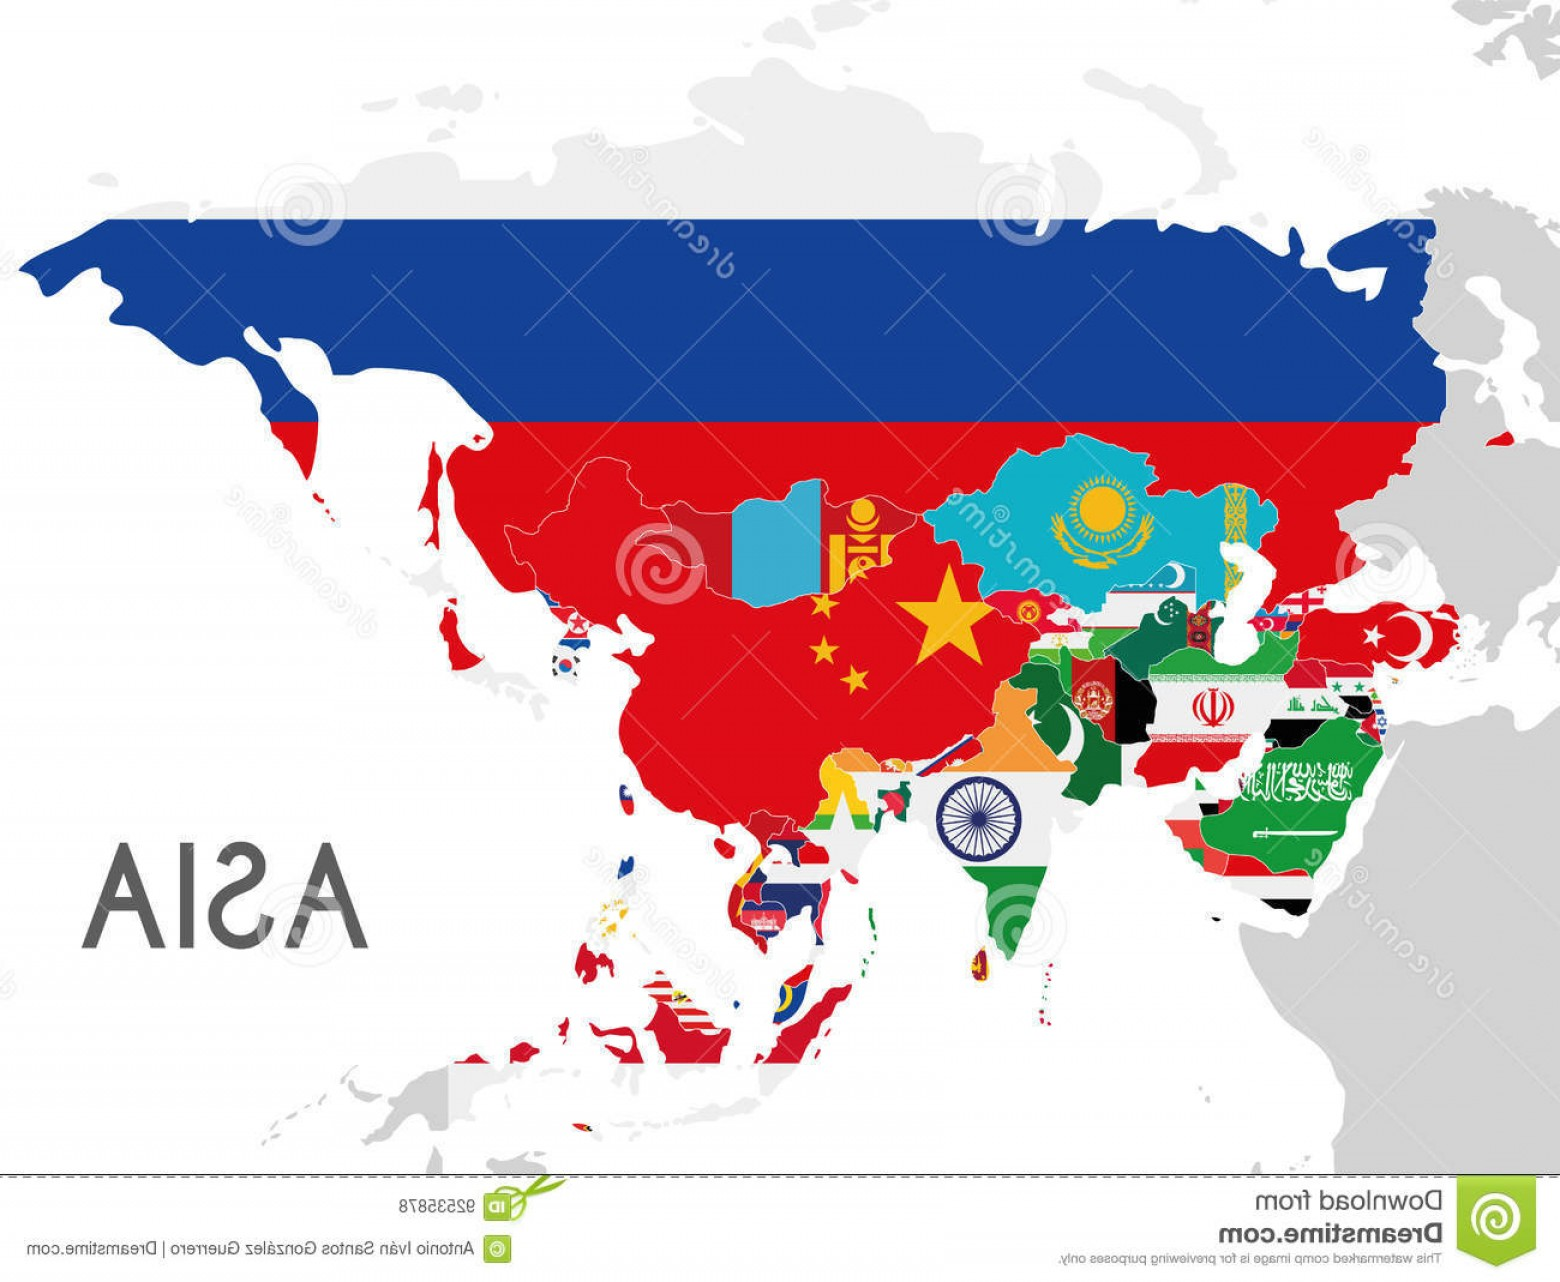 Adding Vectors Lab Map: Stock Illustration Political Asia Map Vector Illustration Flags All Asian Countries Editable Clearly Labeled Layers Image